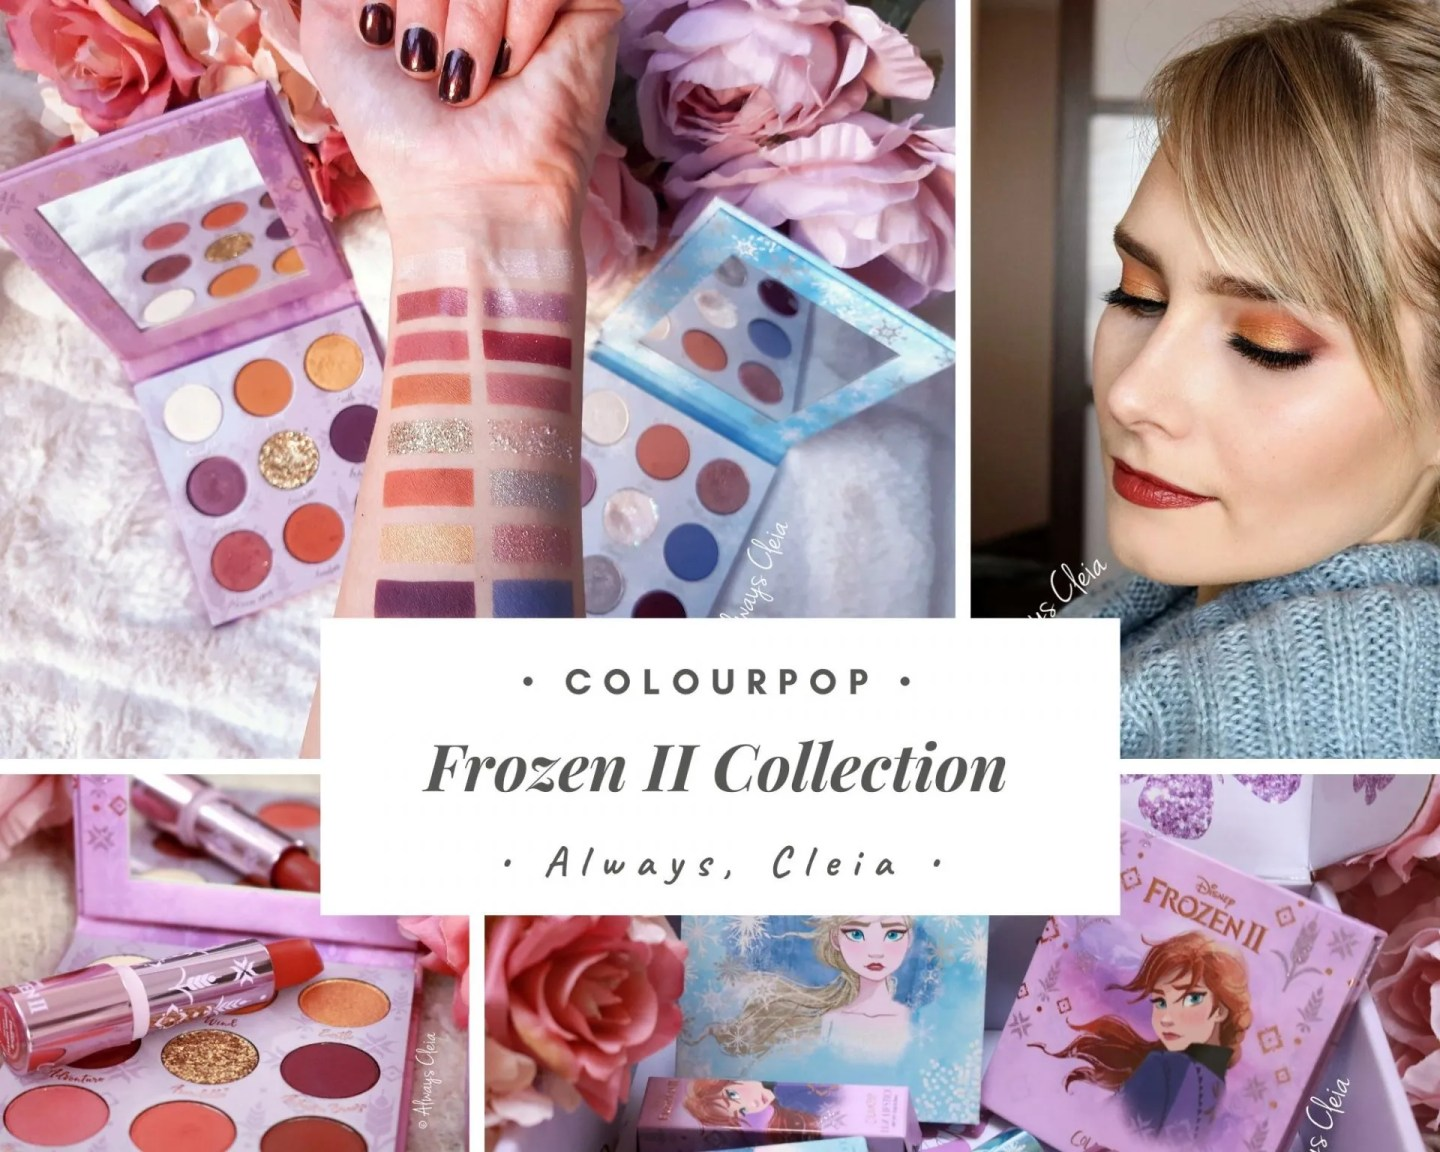 Frozen II X ColourPop Anna & Elsa Palette Reviews + Swatches + 2 Looks